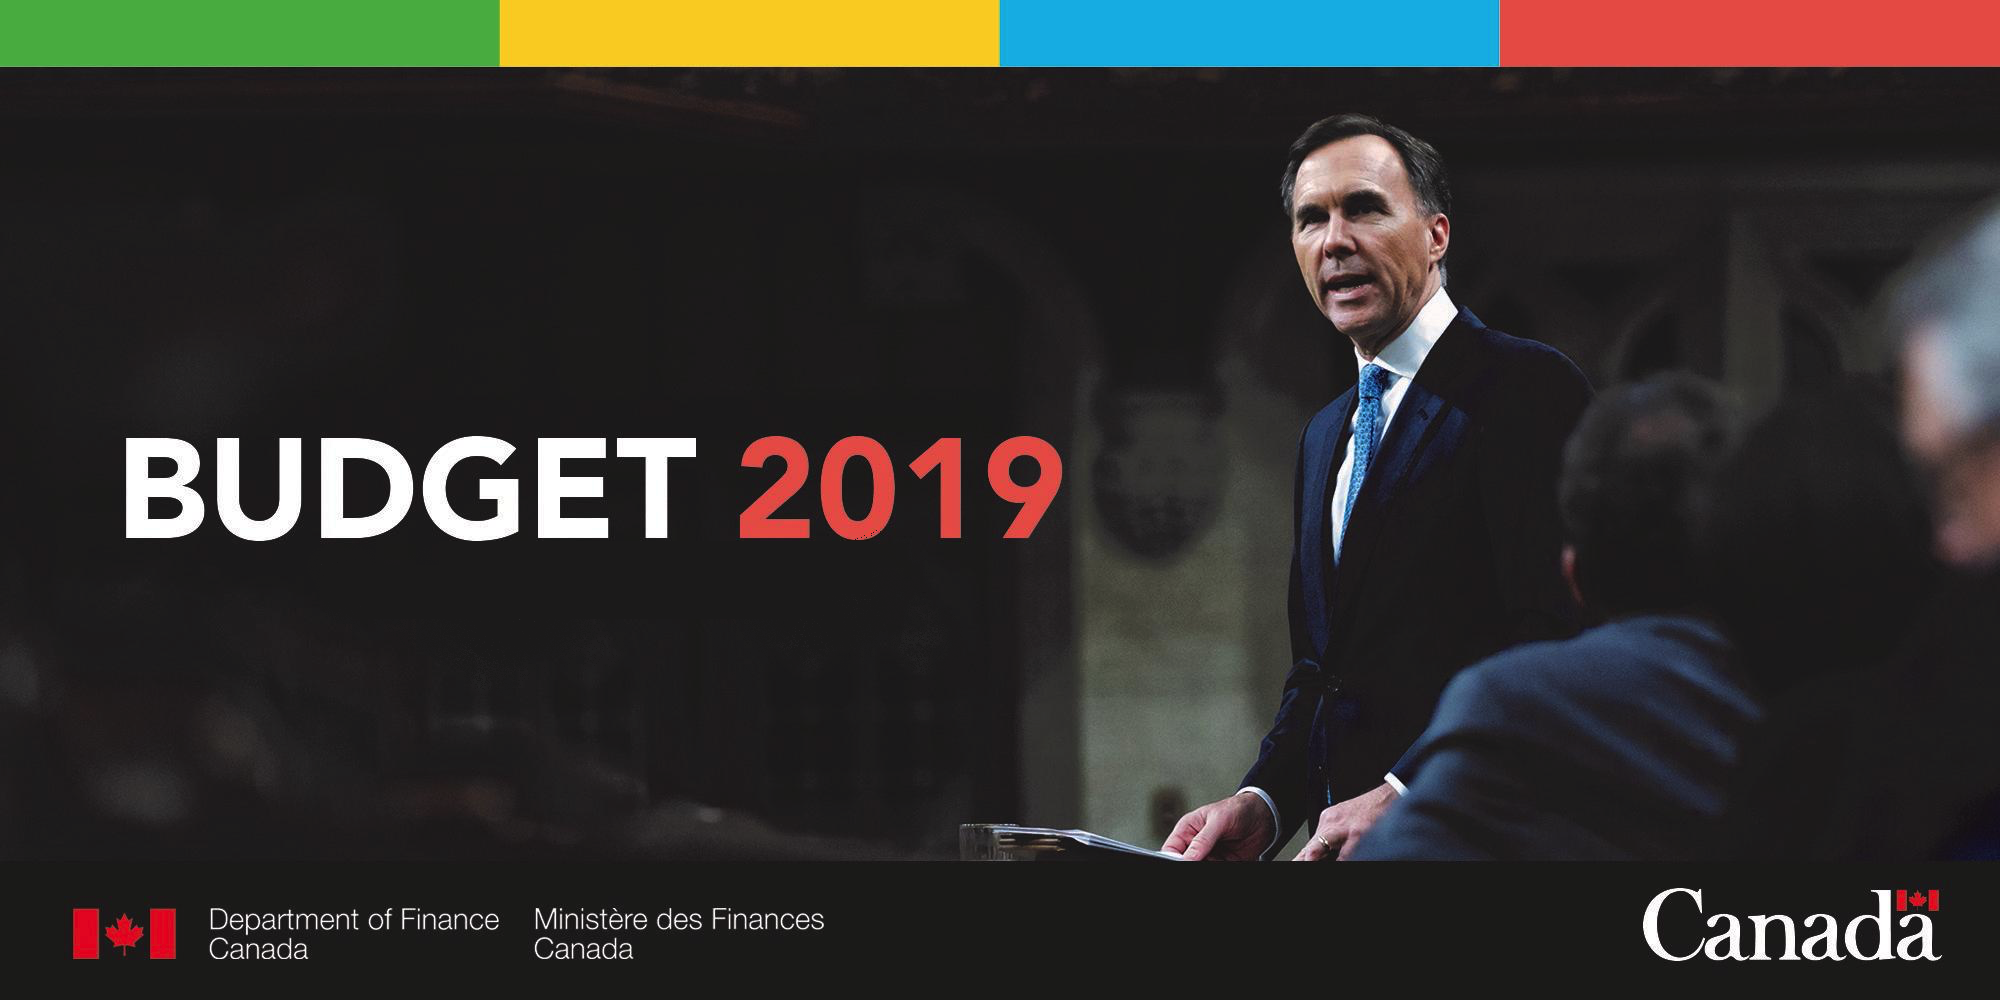 BUDGET 2019 INCLUDES $10B OF NEW MONEY FOR RENTAL SUPPLY